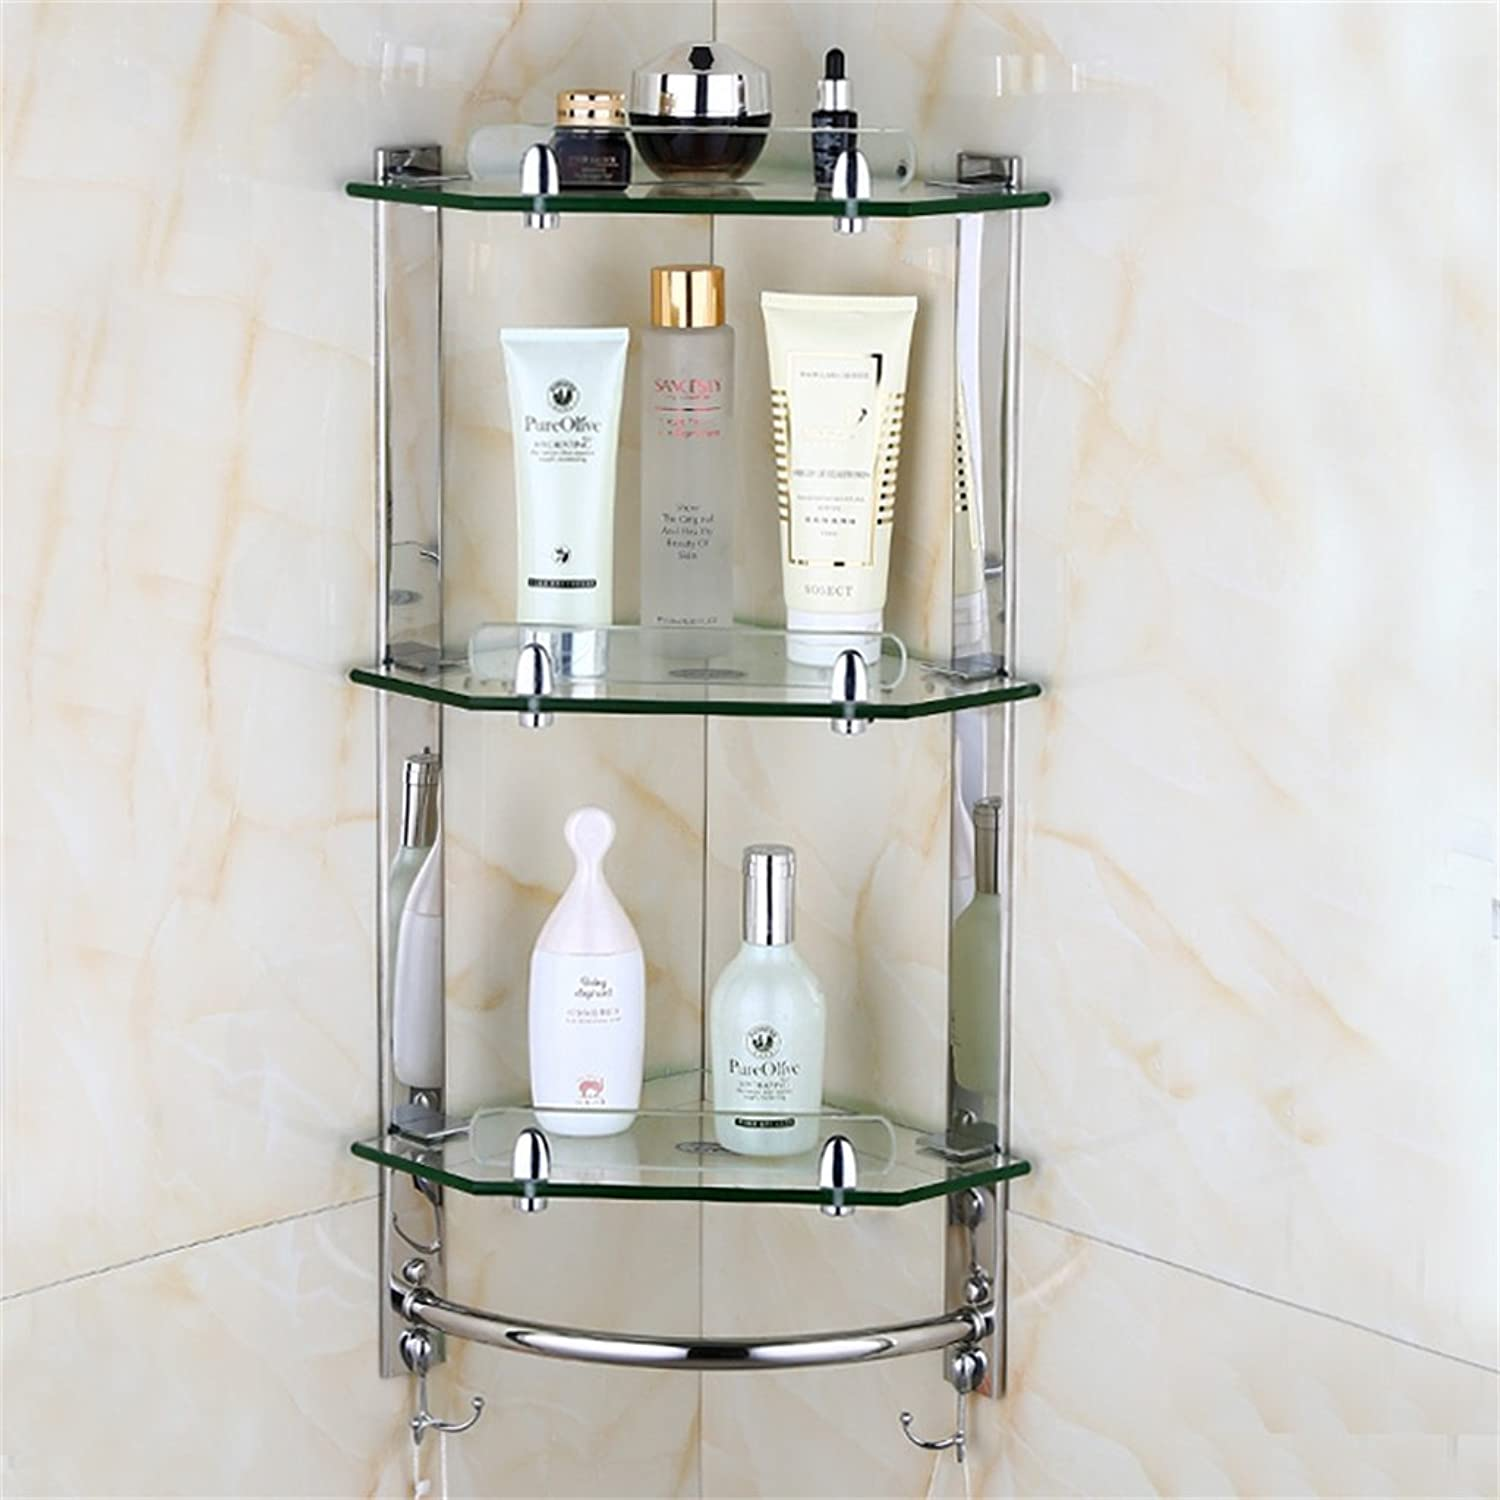 Cpp Shelf European Style Bathroom Shelf Glass Wall Hanging Storage Rack Stainless Steel Wall Tripod Bathroom Corner Stand